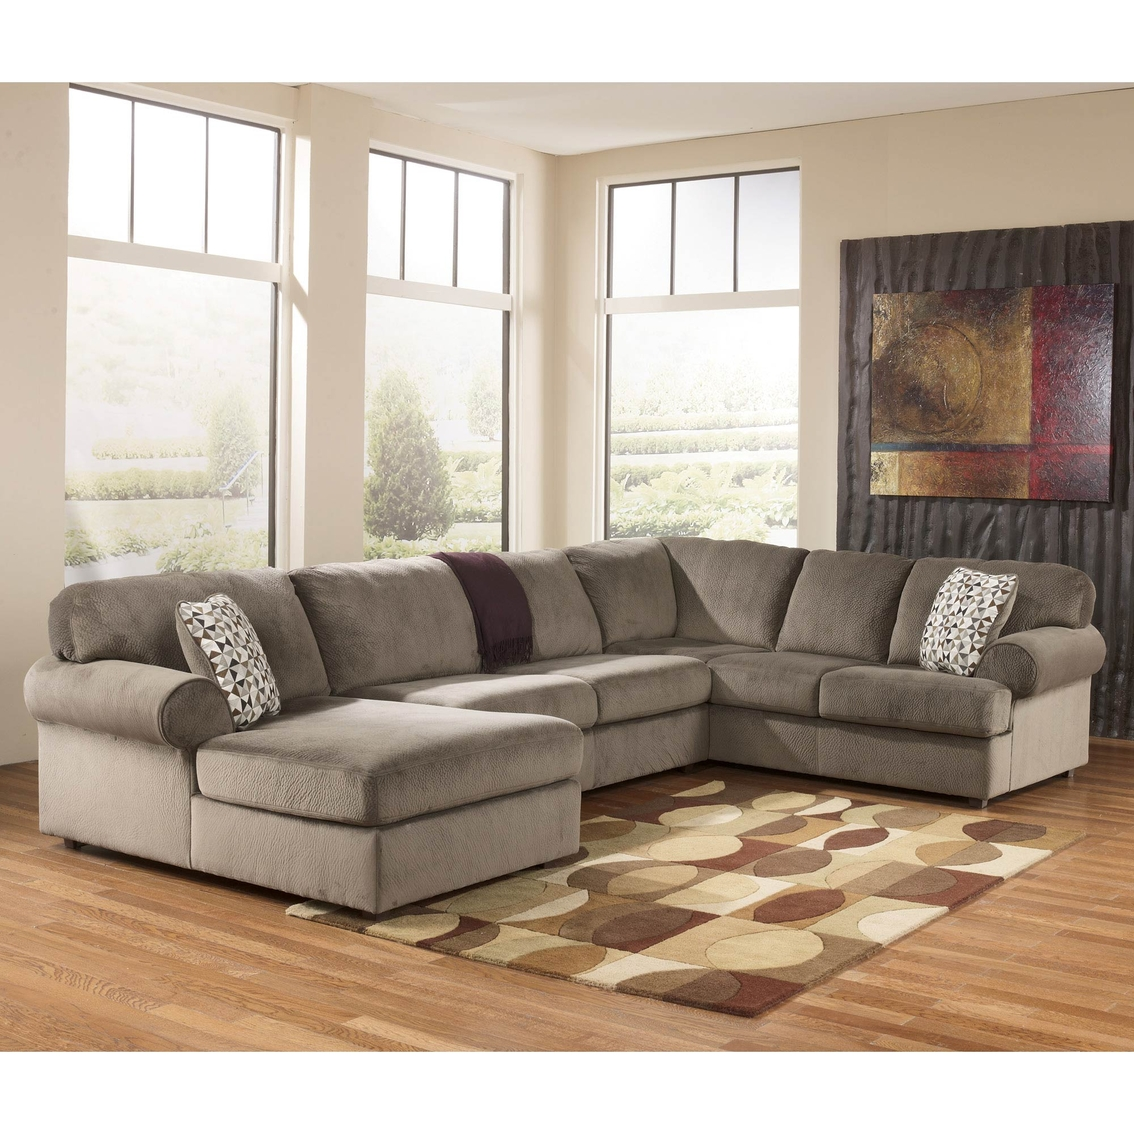 Signature Design By Ashley Jessa Place 3 Pc Sectional Sofa